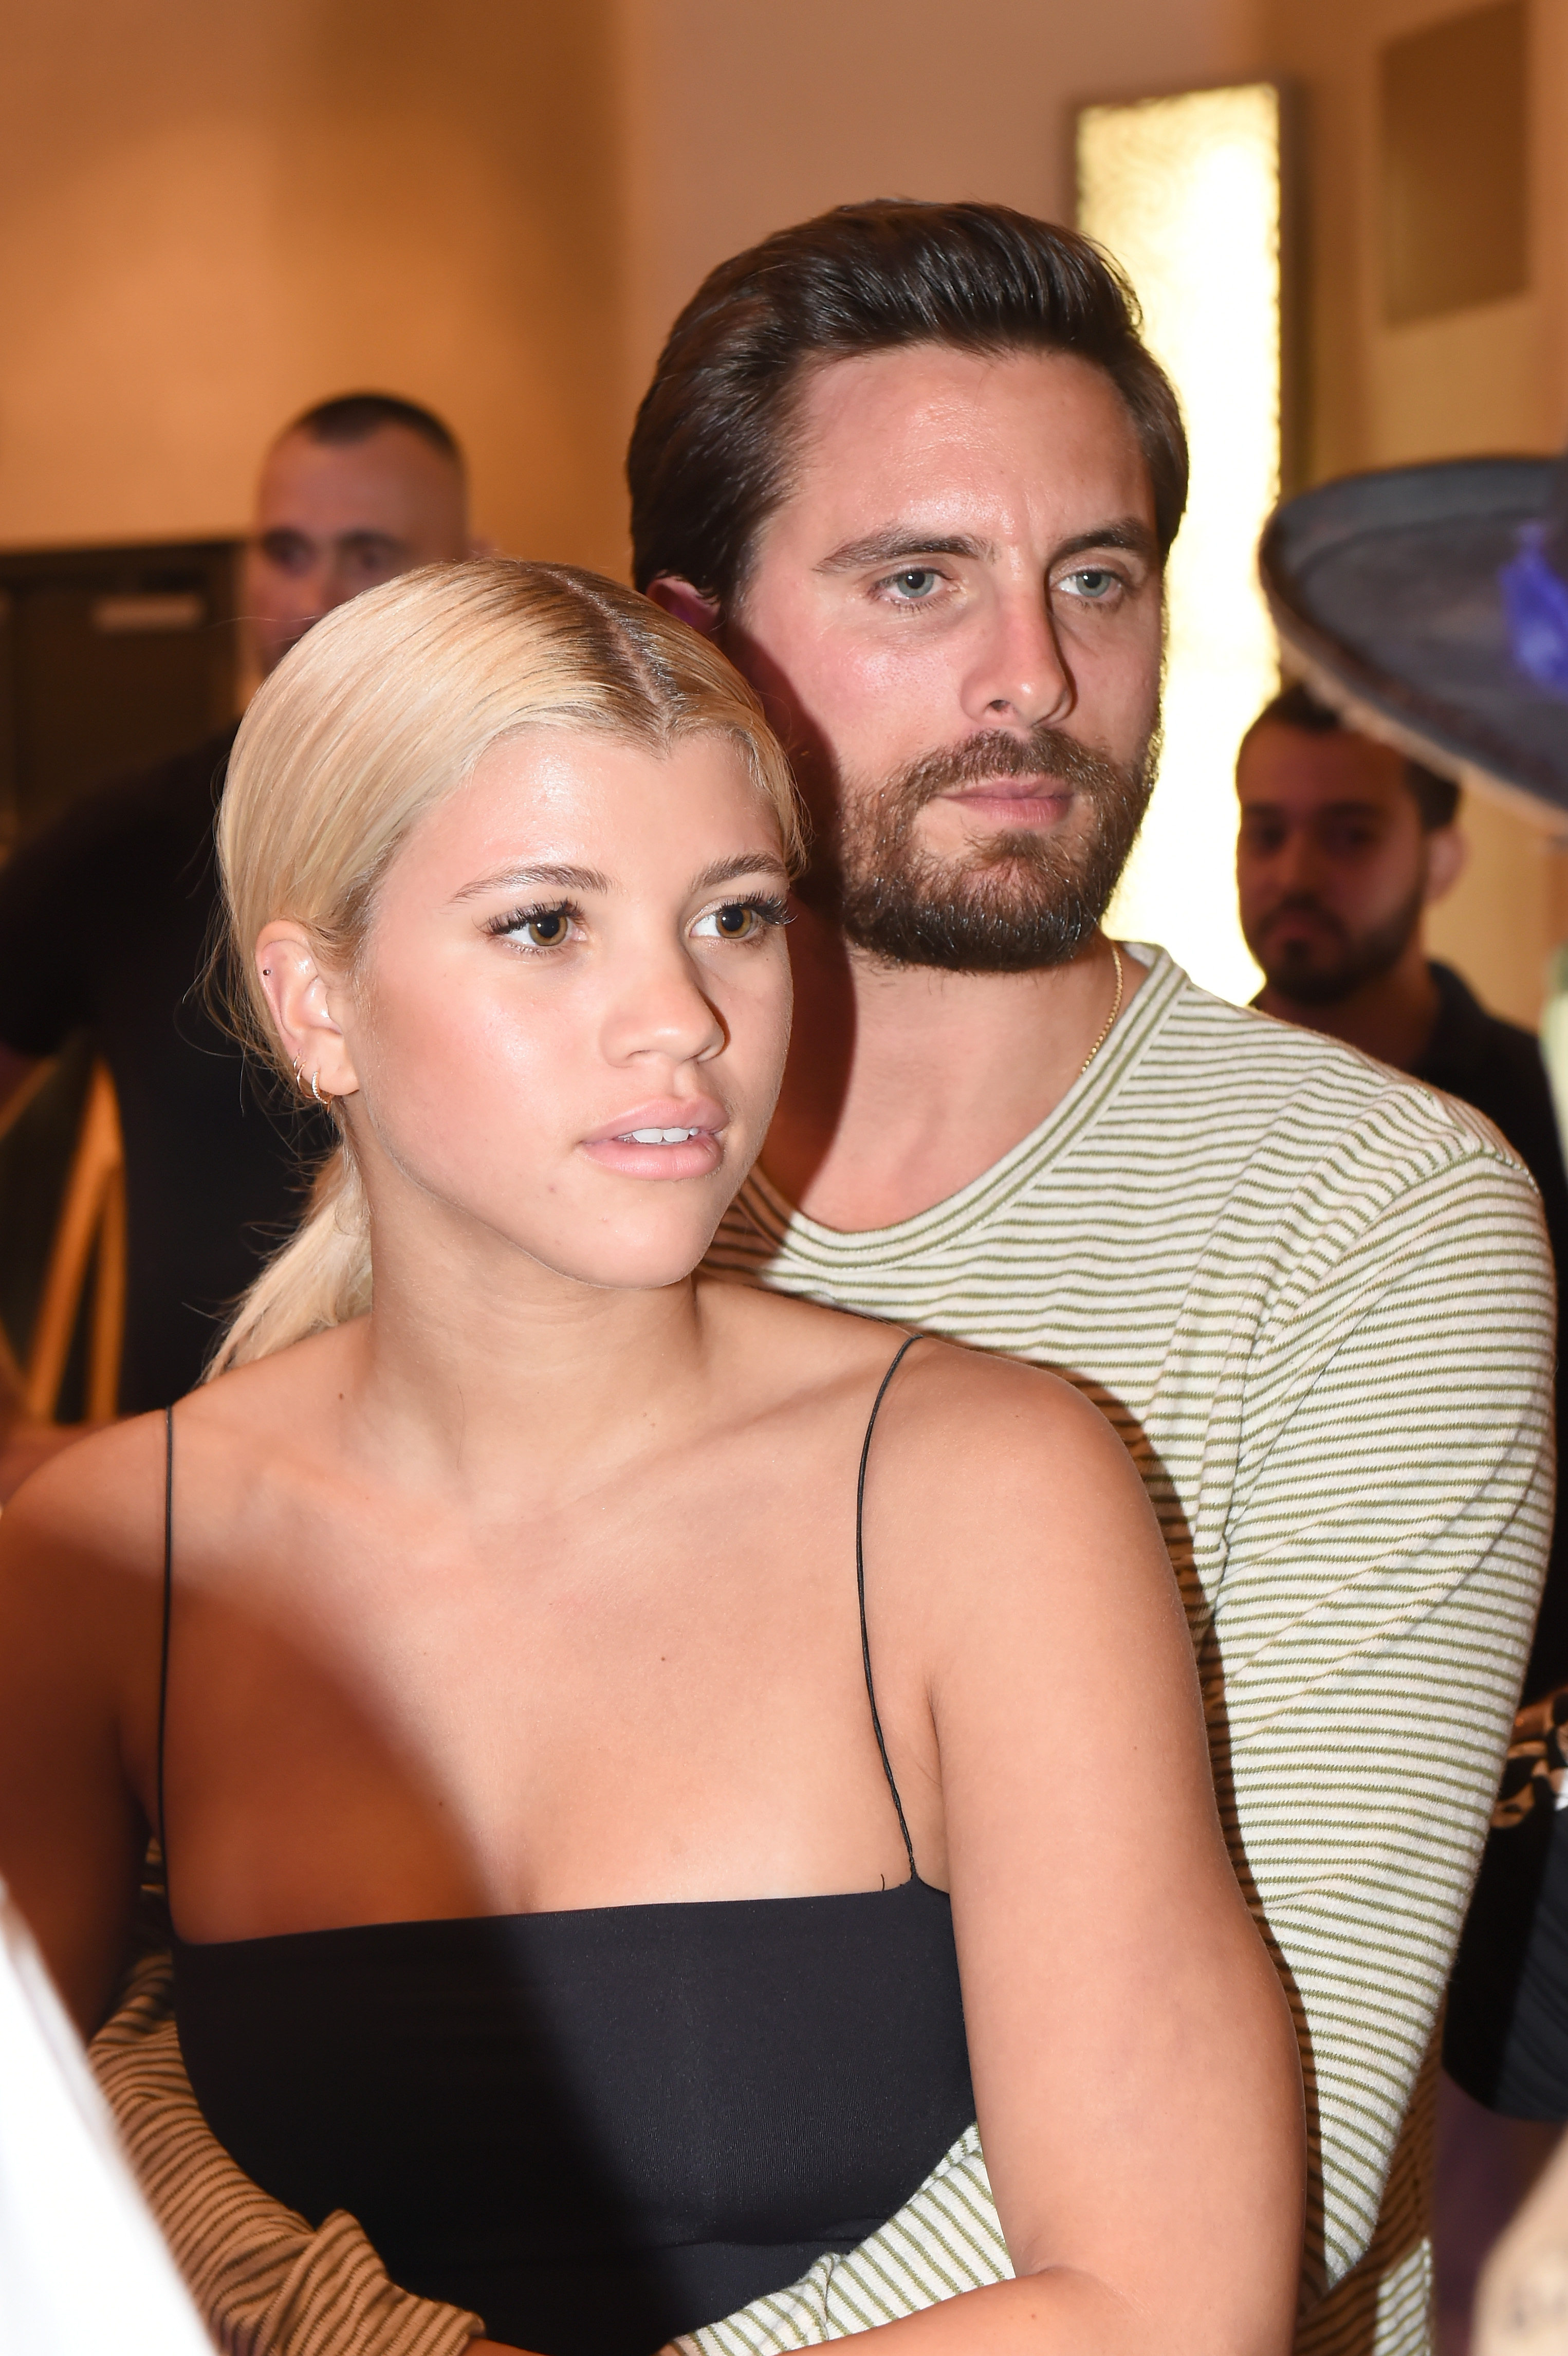 Sofia Richie (L) and Scott Disick attend Haute Living's VIP Pop-Up opening of Alec Monopoly from Art Life and David Yarrow from Maddox Gallery at Fleur De Lis Ballroom, Fontainebleau Miami Beach on December 7, 2017 in Miami Beach, Florida.